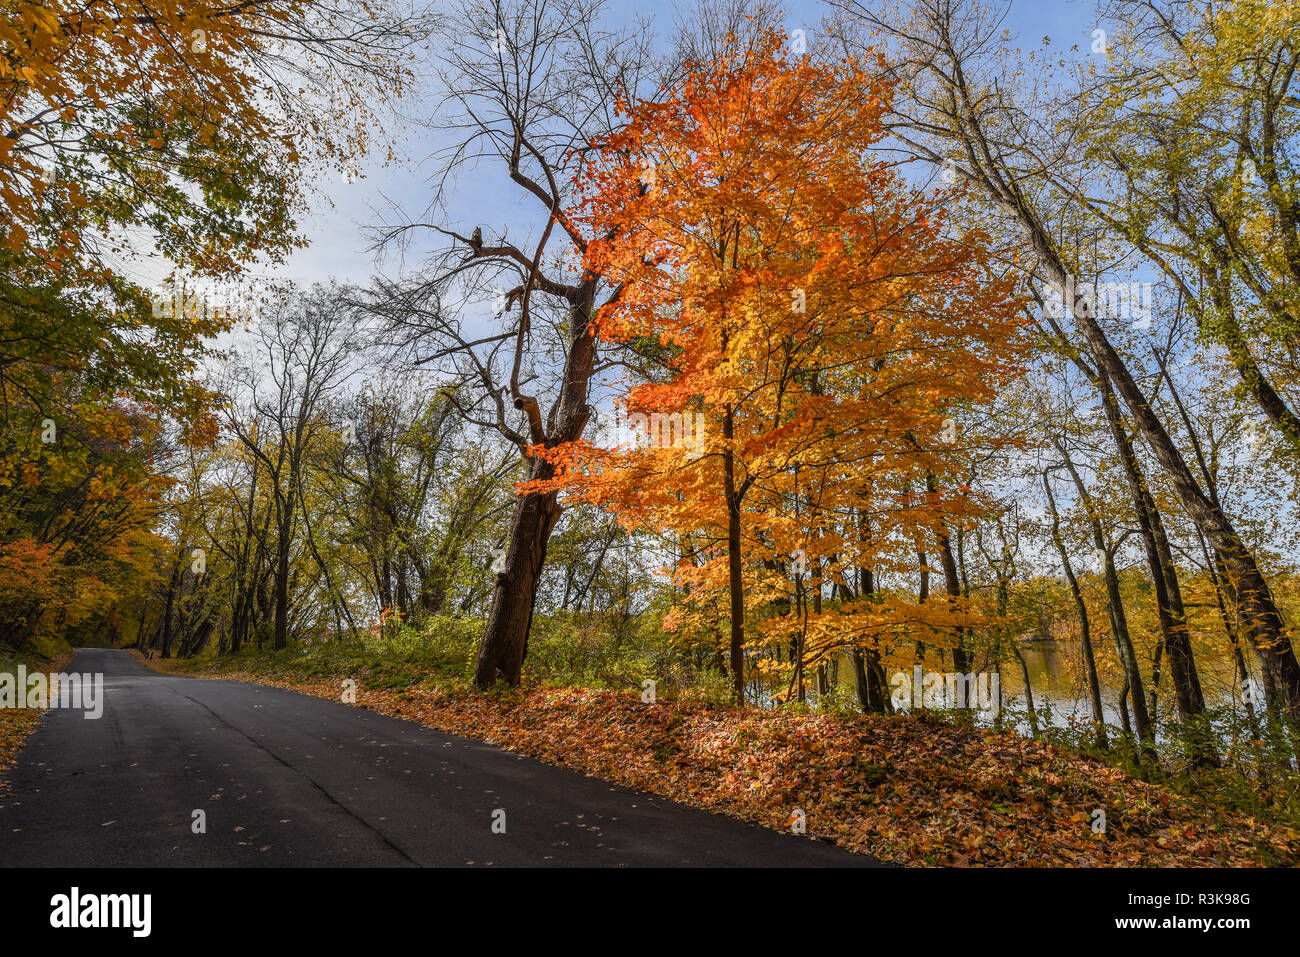 An autumnal view on Tryon Street along the Connecticut River in South Glastonbury, CT - Stock Image